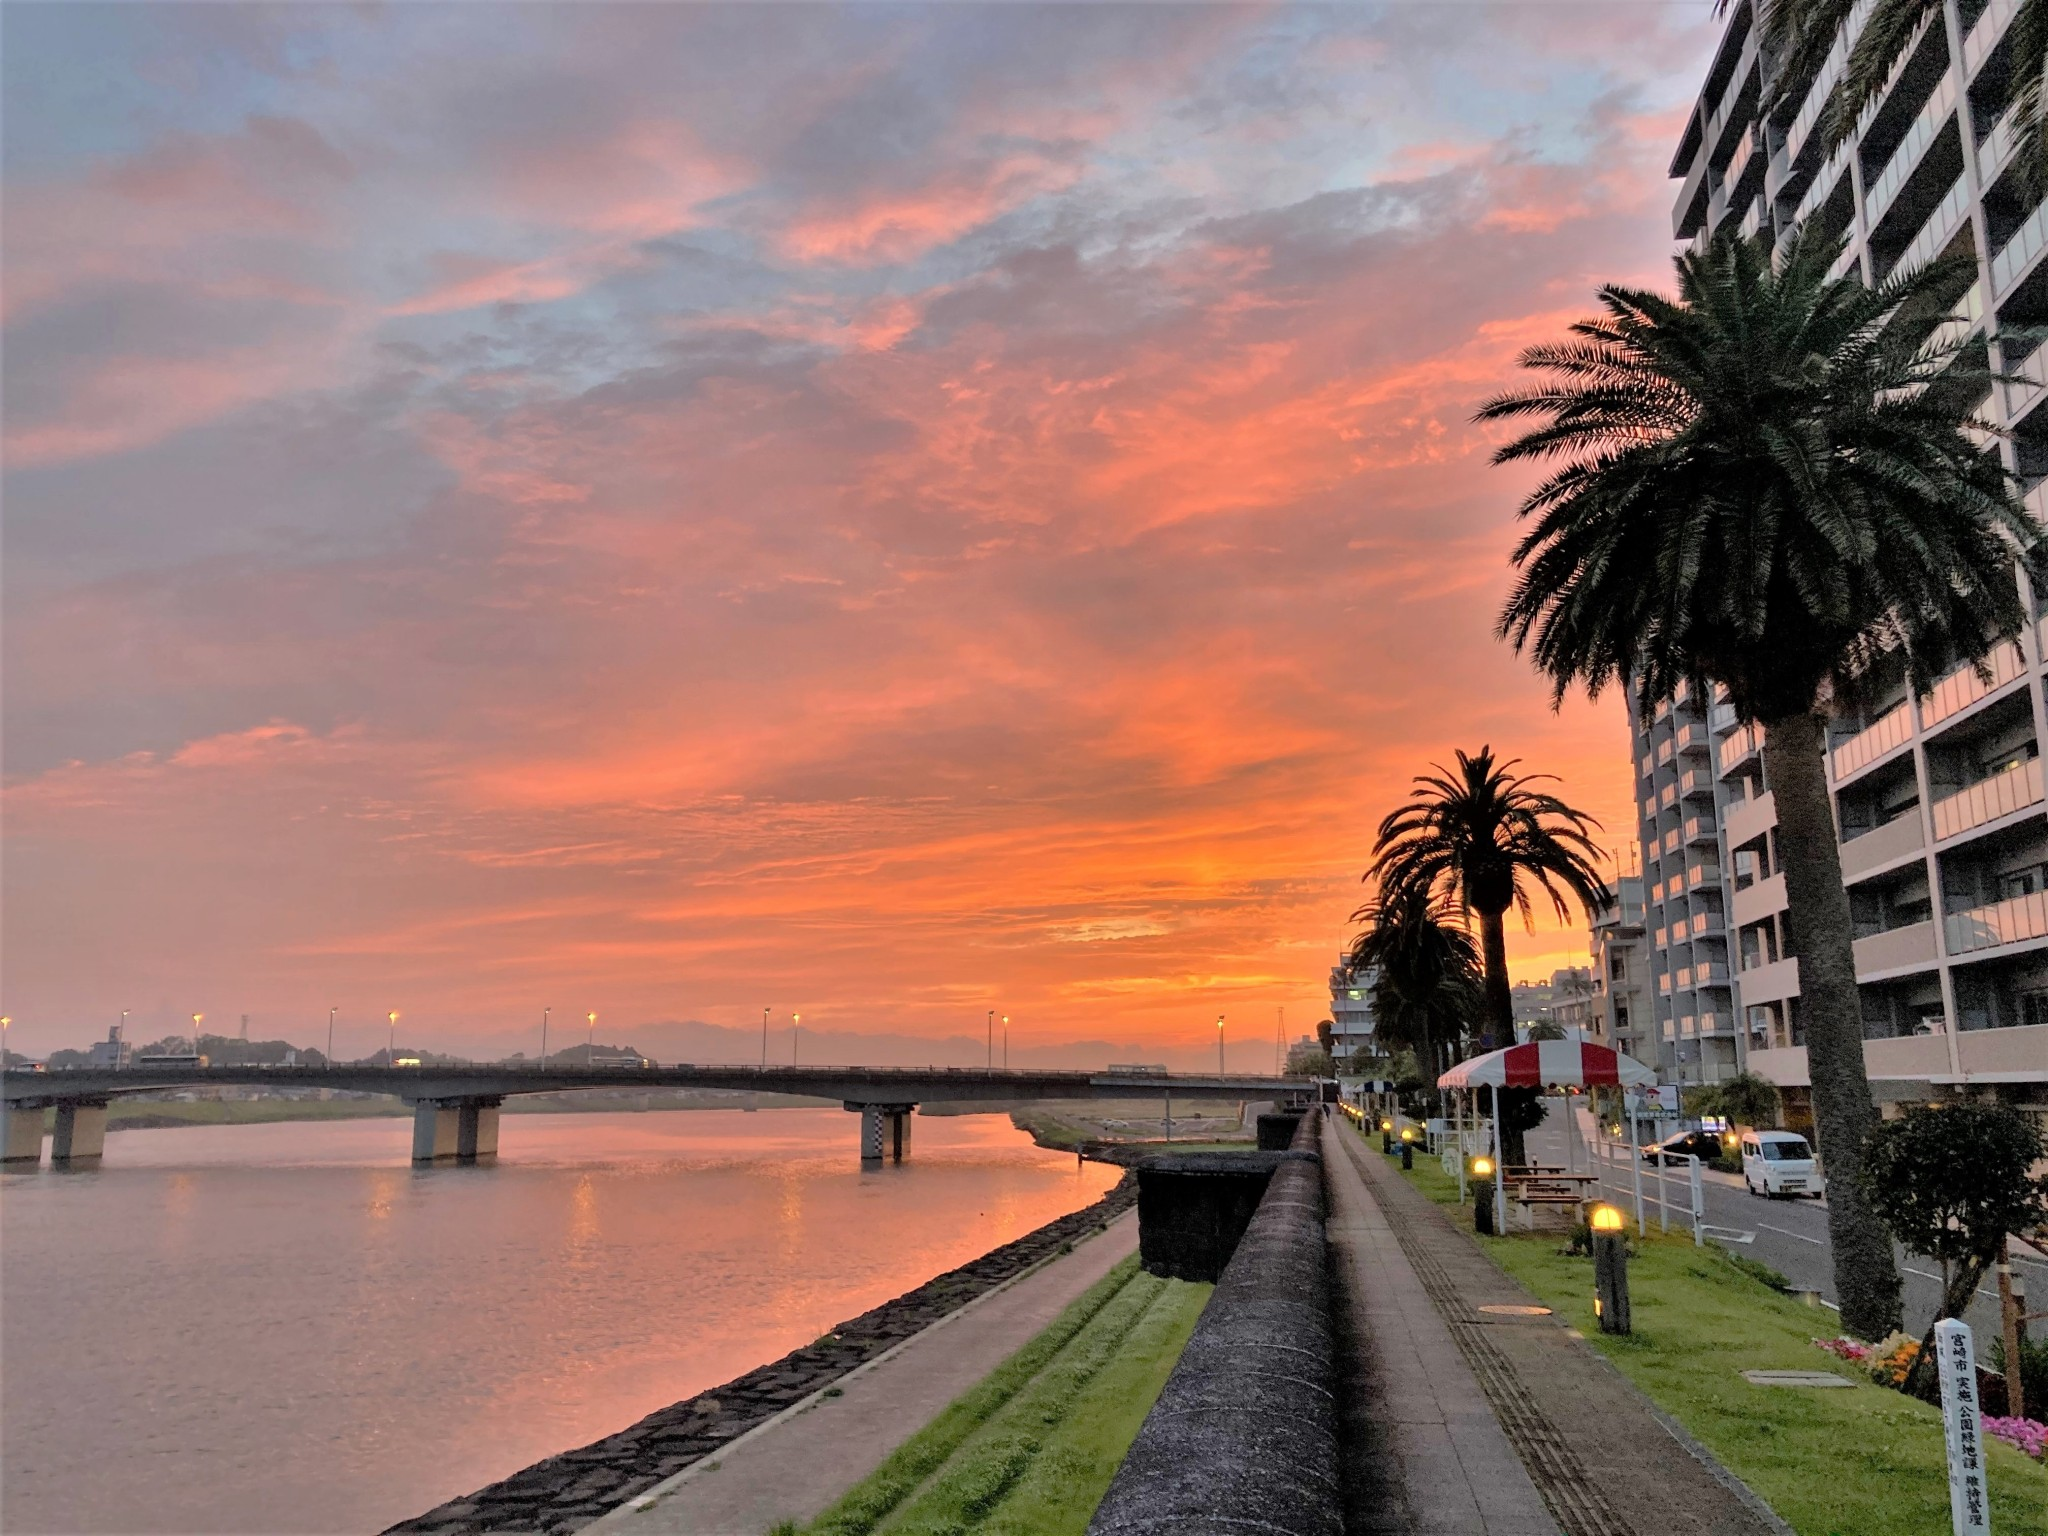 Palm trees, a river, and a bridge beneath a pink, orange, and blue sky at sunset in Miyazaki, Japan.